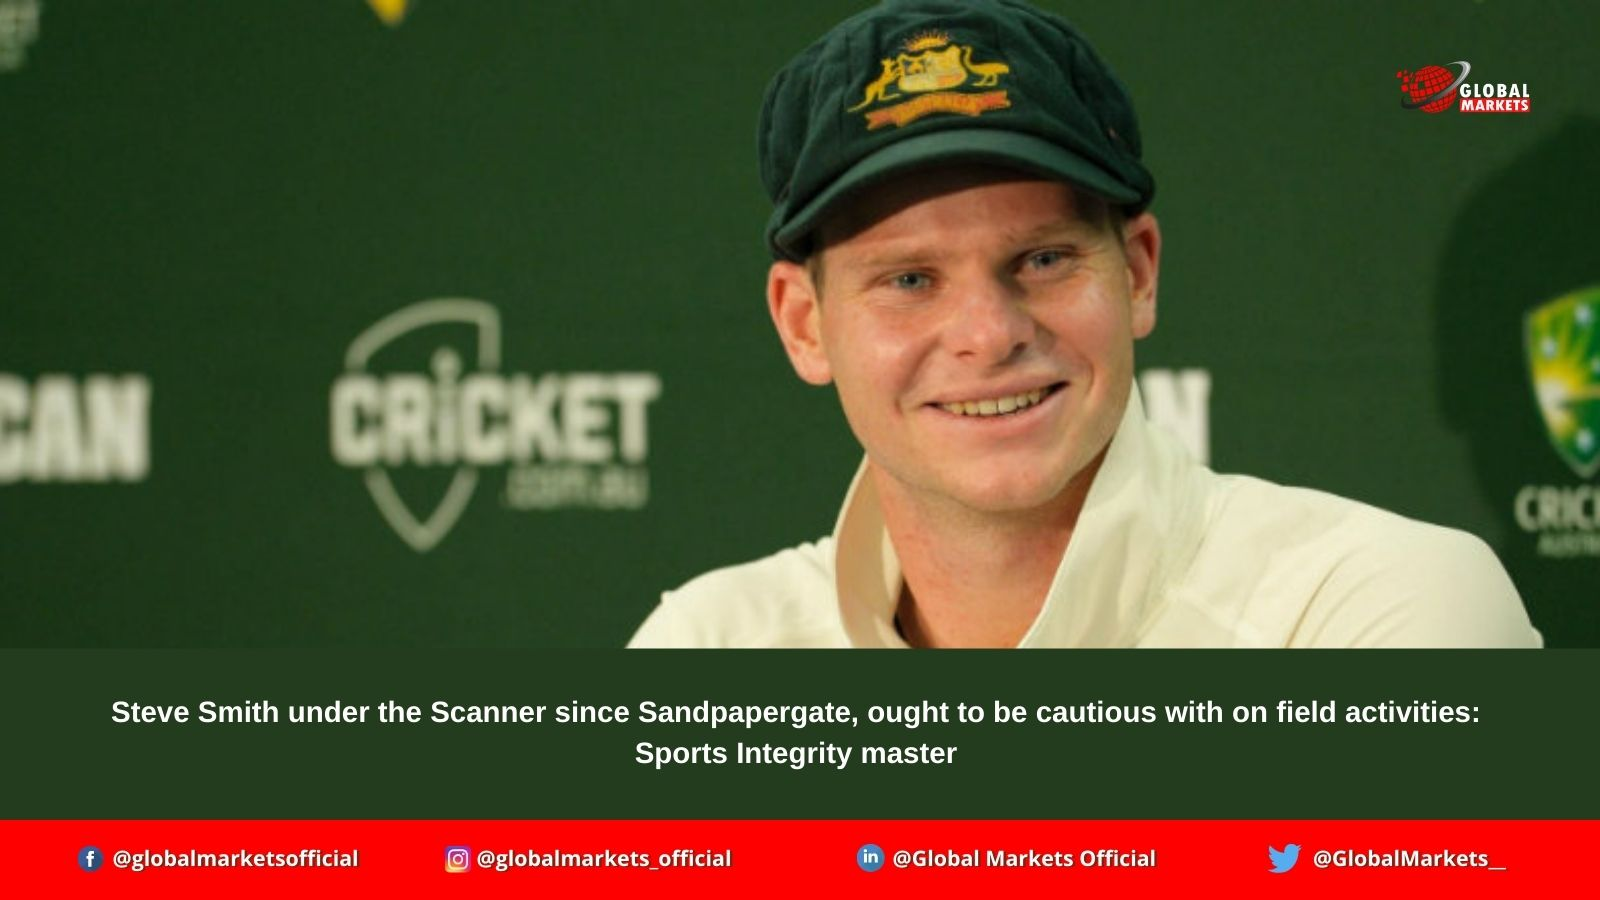 Steve Smith under the Scanner since Sandpapergate, ought to be cautious with on field activities